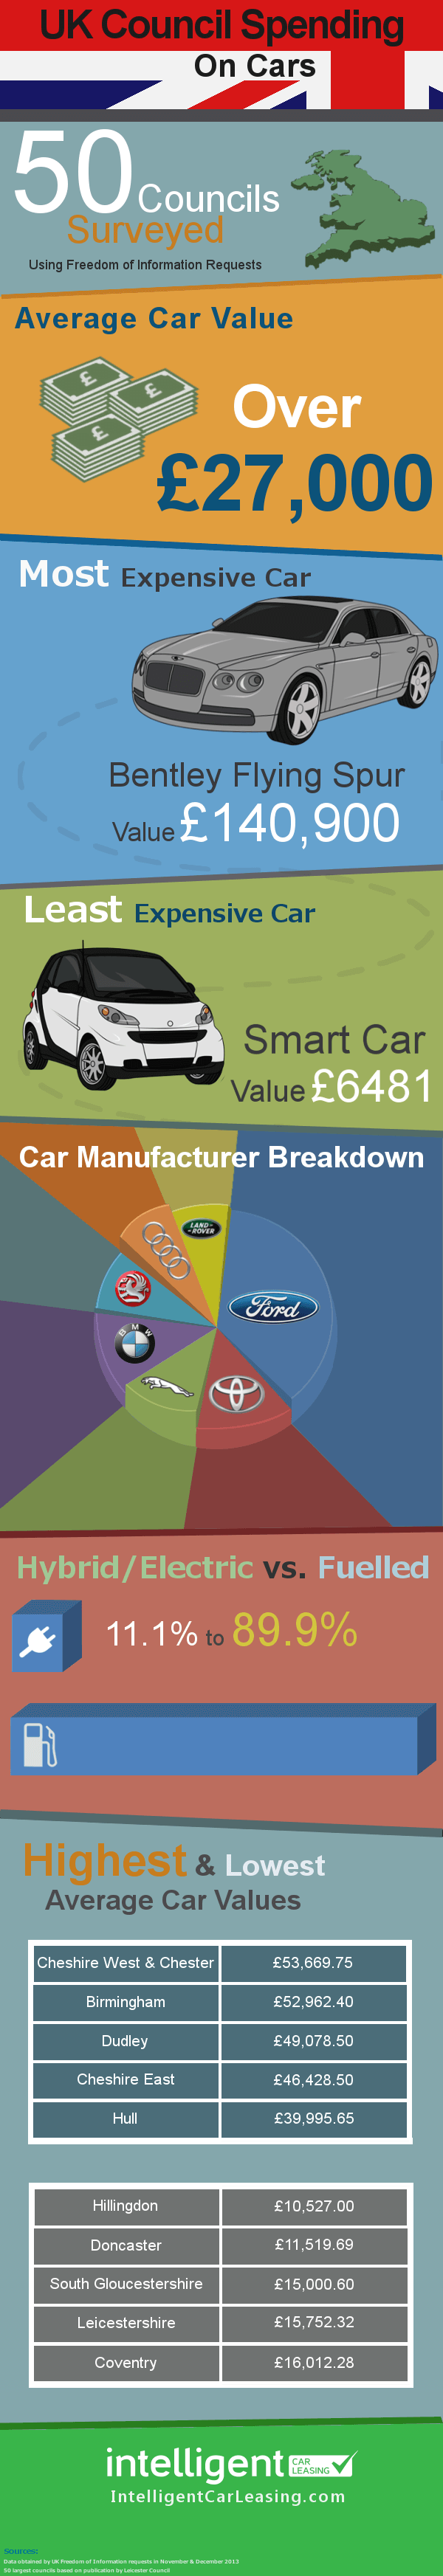 Local authority spending on vehicles infographic